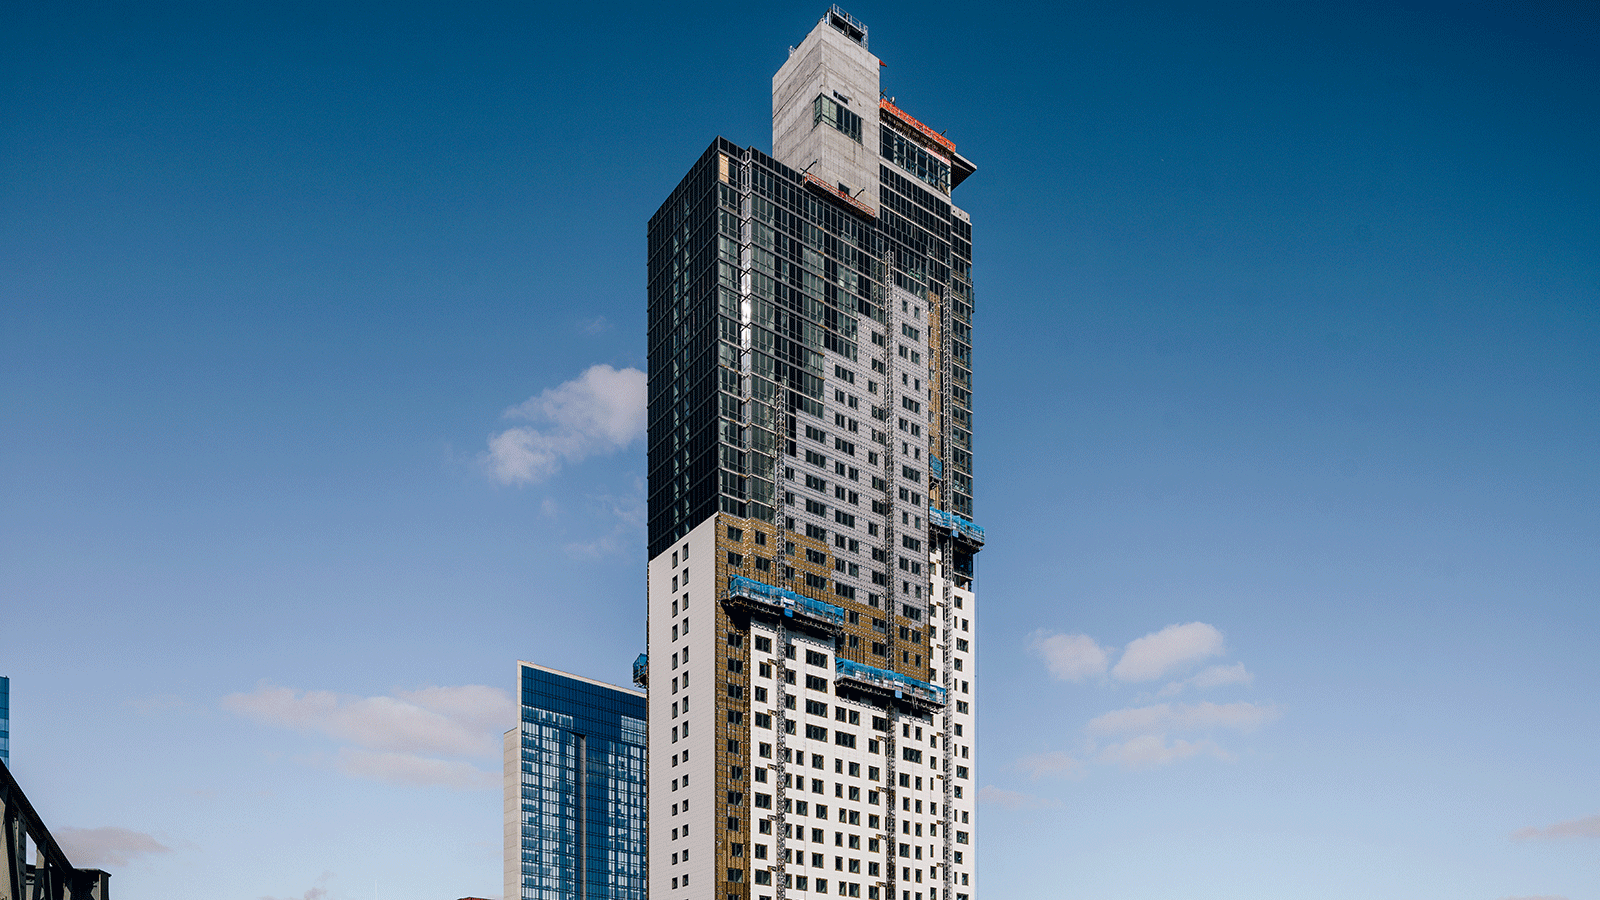 PORCELANOSA Grupo Projects: Live the high life in the Alta Lic tower in New York